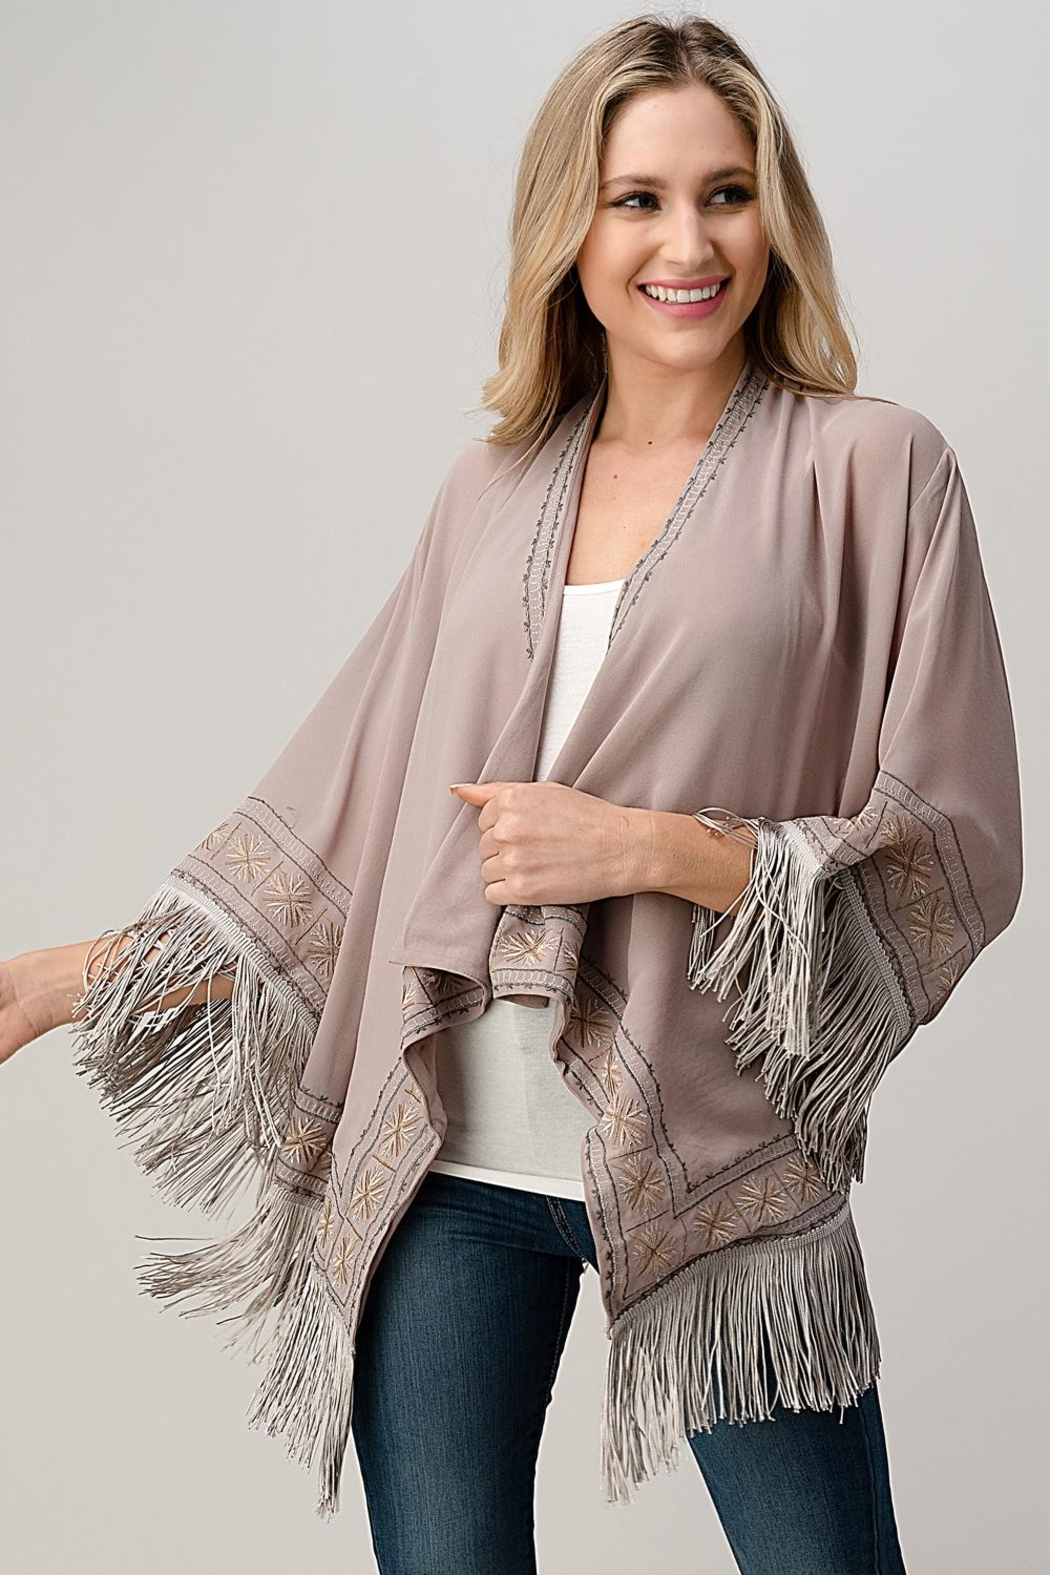 Kaii Beaded With Tassel Hemmed Cover Up Kimono Cardigan - Front Cropped Image